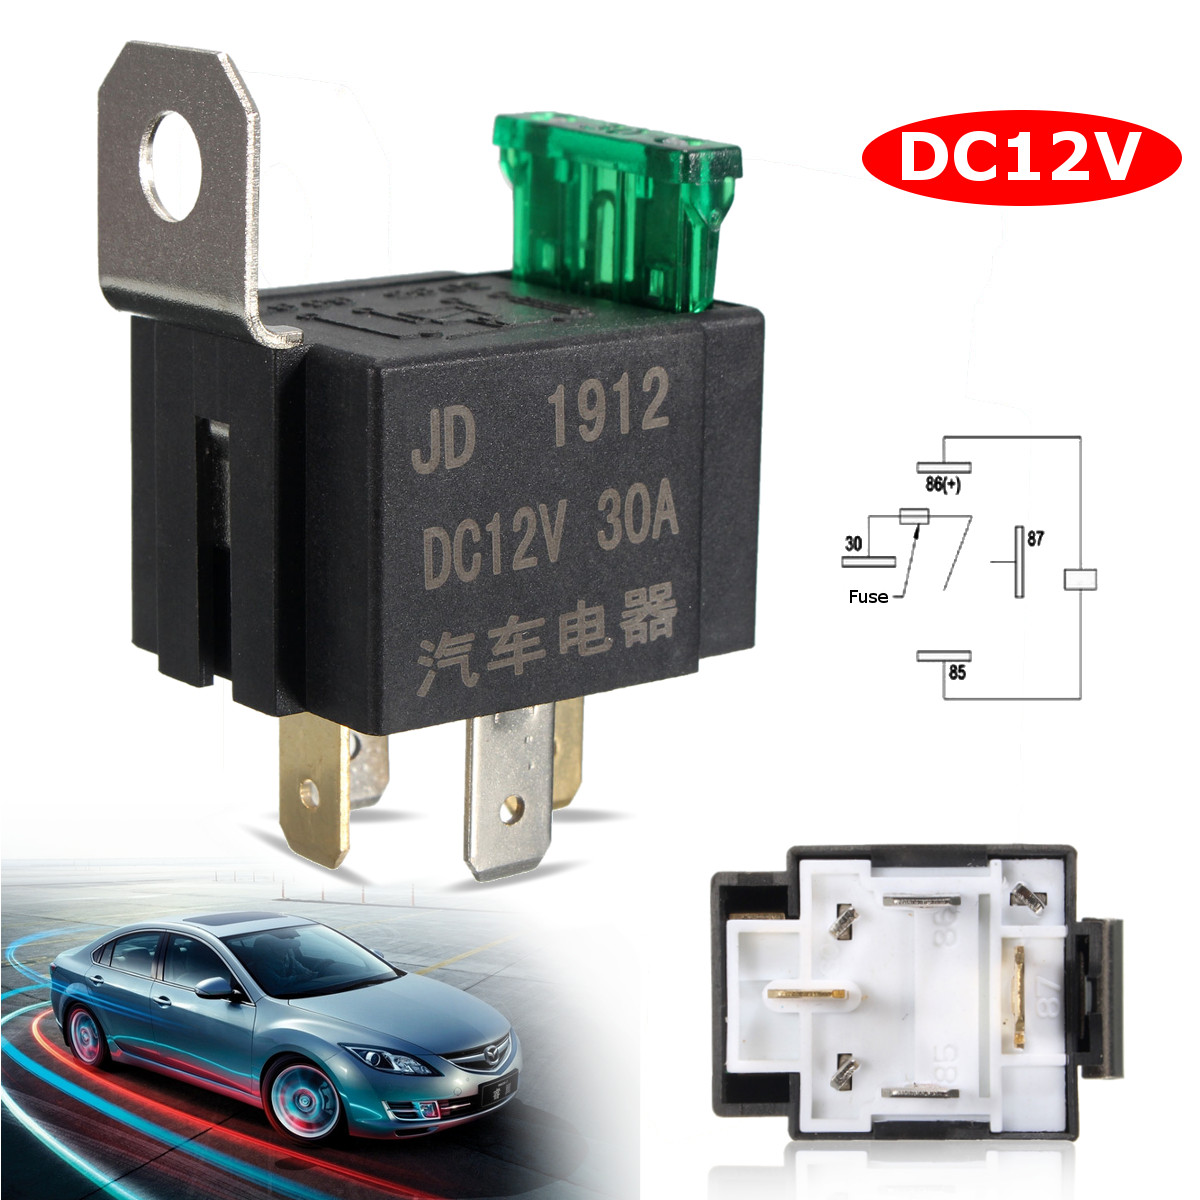 Mini Practical Car Fused Relay DC 12V 30A 4 Pin Electronic Relay Portable Motocycle Automobile Bike Auto Fused On/Off Relay